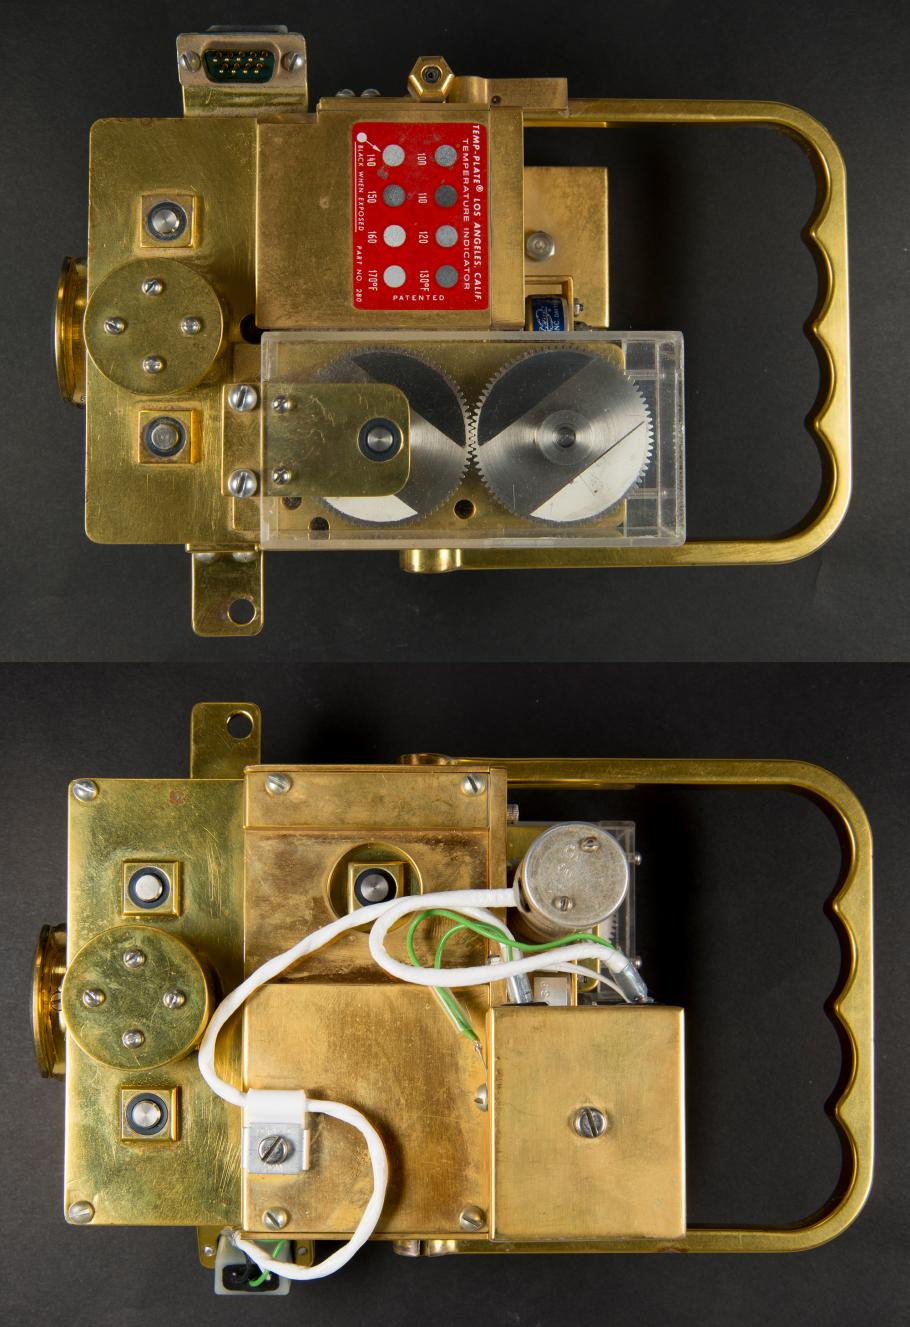 At top the front of the film transport, and at bottom the back.